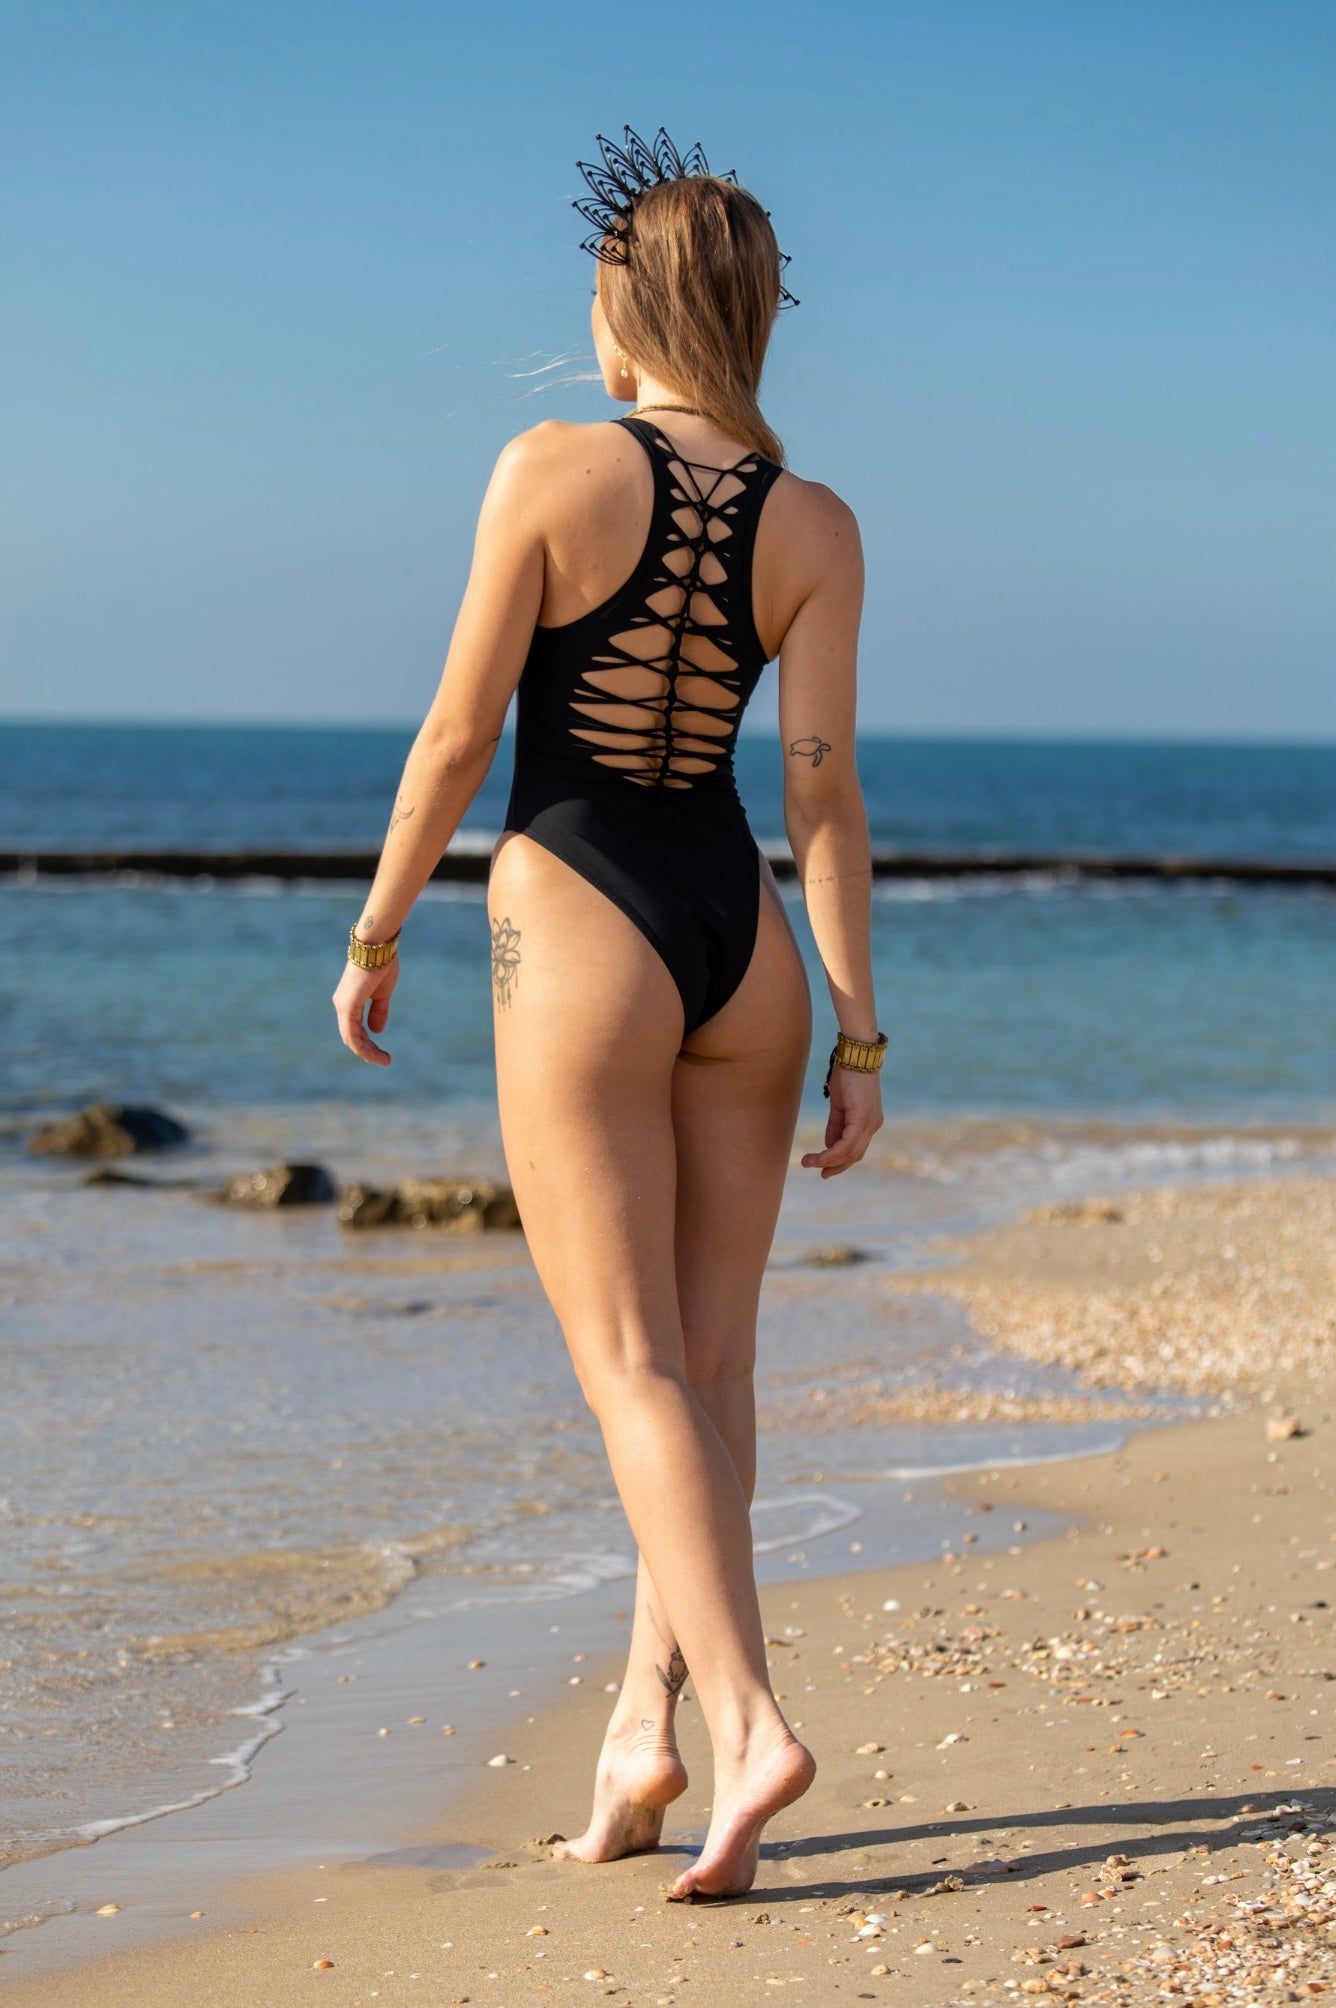 Black One Piece High Leg Swimsuit For Women